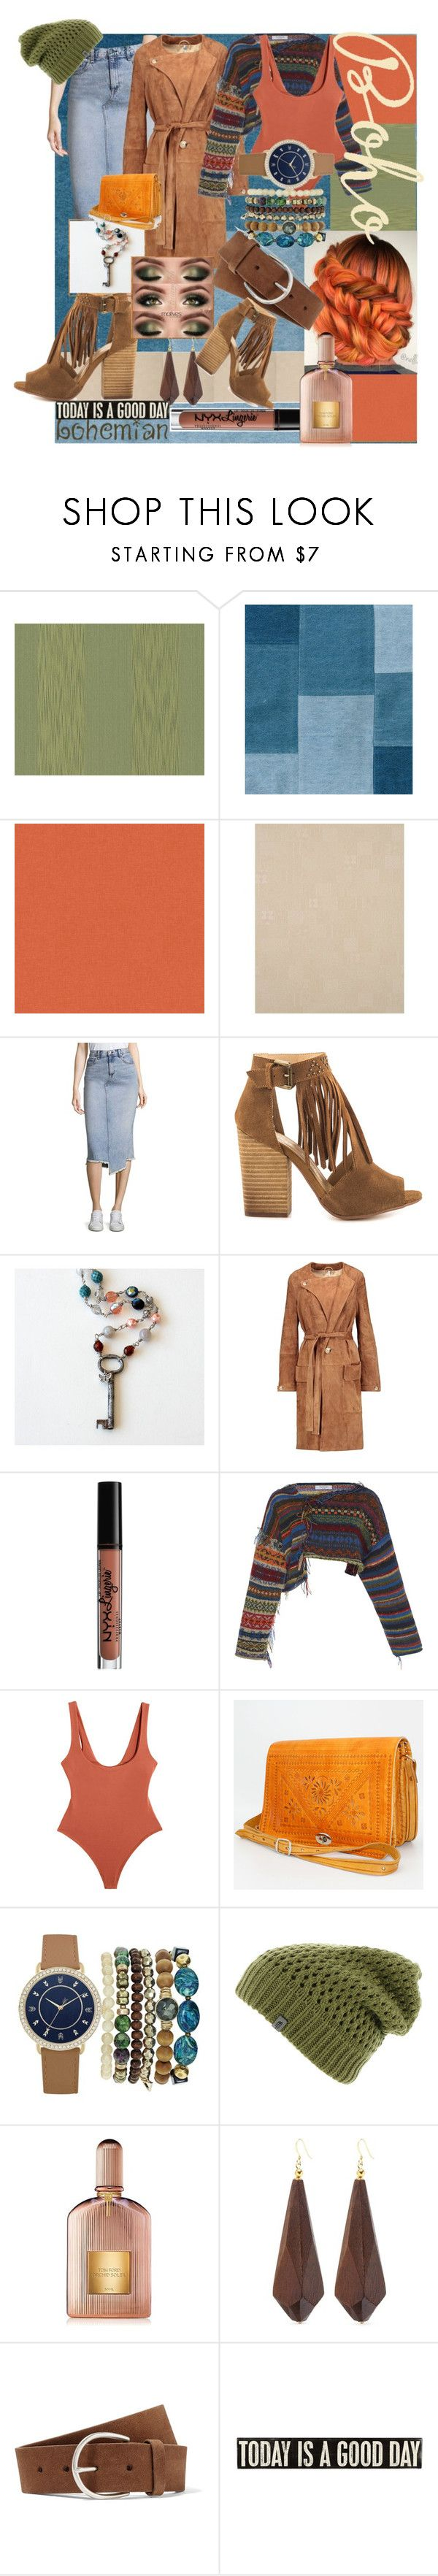 """""""Boho Kinda Girl"""" by milady-metal ❤ liked on Polyvore featuring BD Fine Wallcoverings, York Wallcoverings, rag & bone/JEAN, Chinese Laundry, Helmut Lang, NYX, Samantha Pleet, A.X.N.Y., The North Face and Tom Ford"""